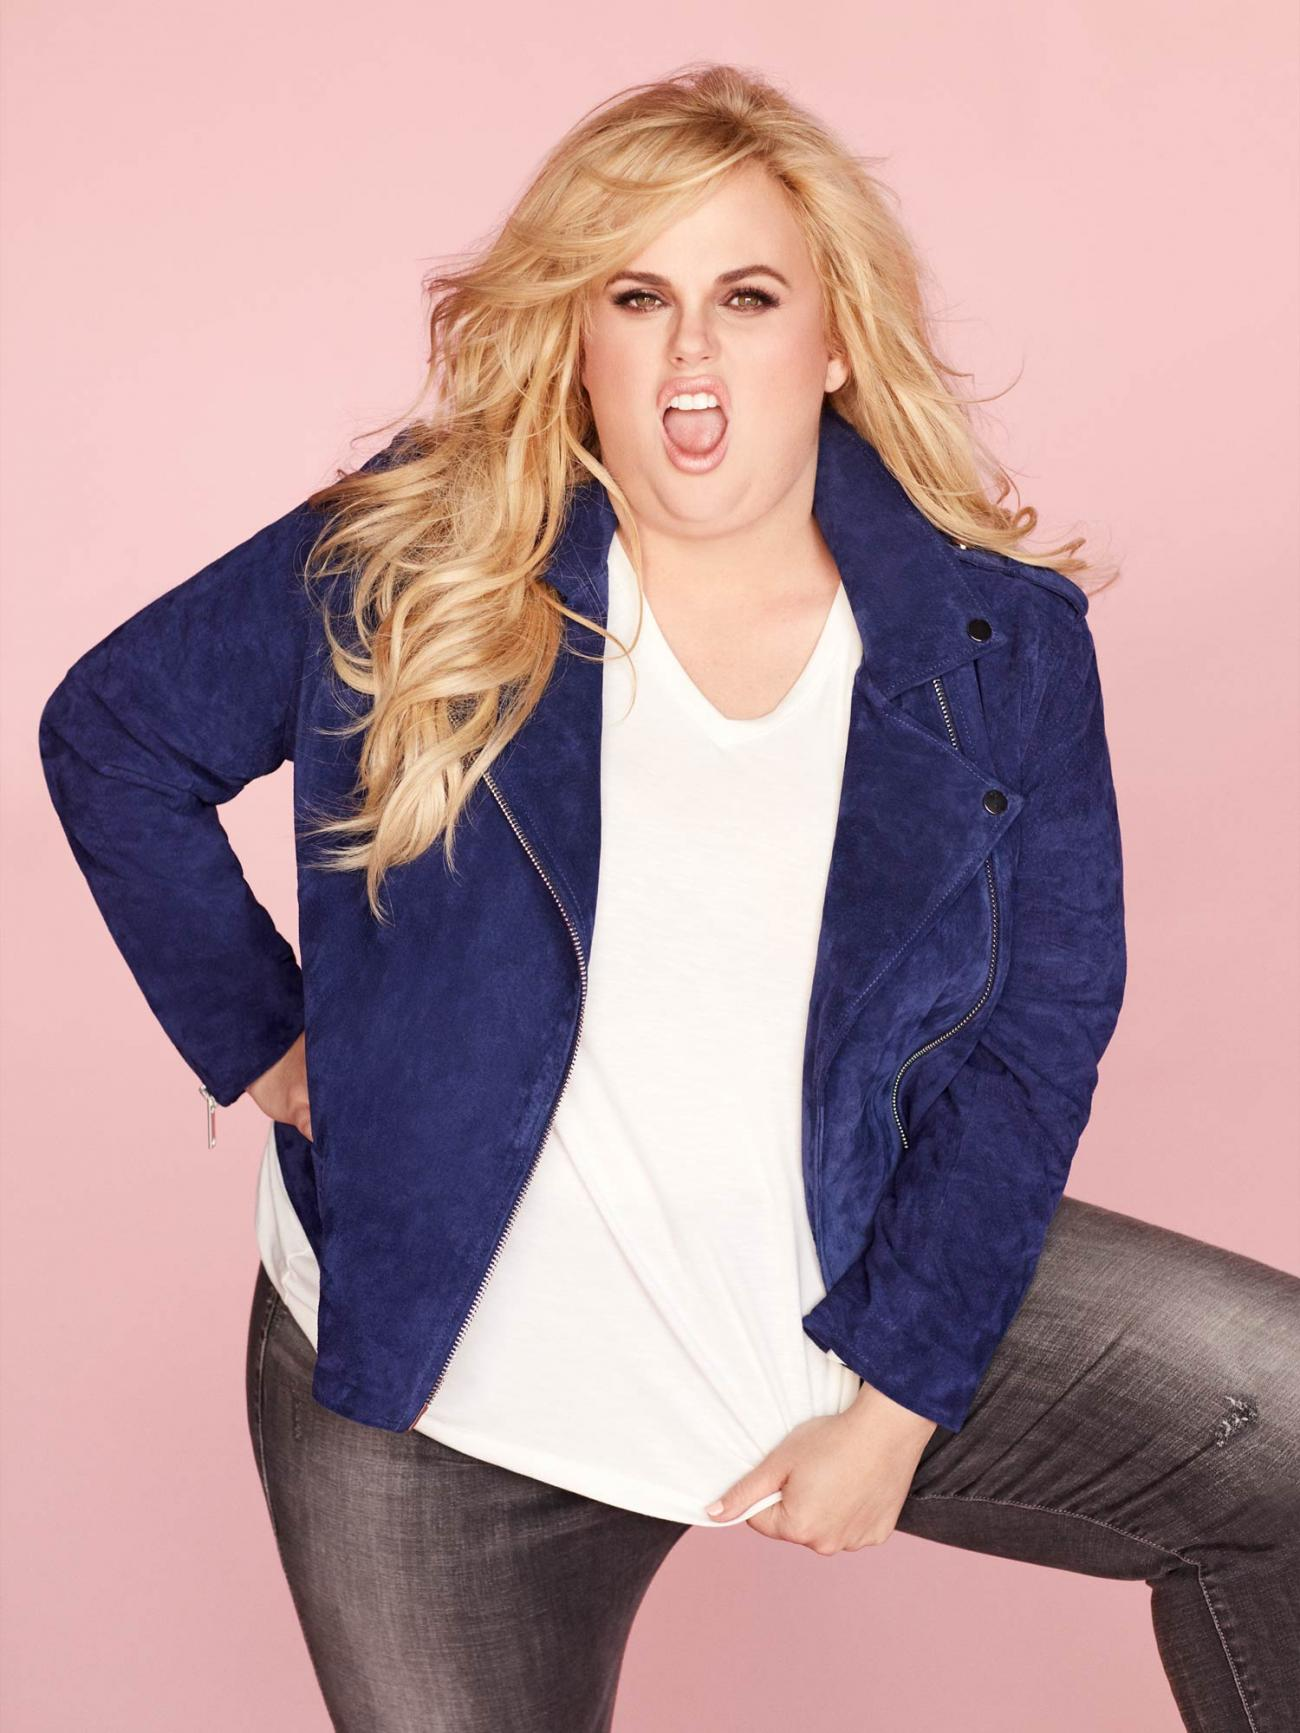 Rebel Wilson 39 S New Collection To Debut At Nordstrom Dia